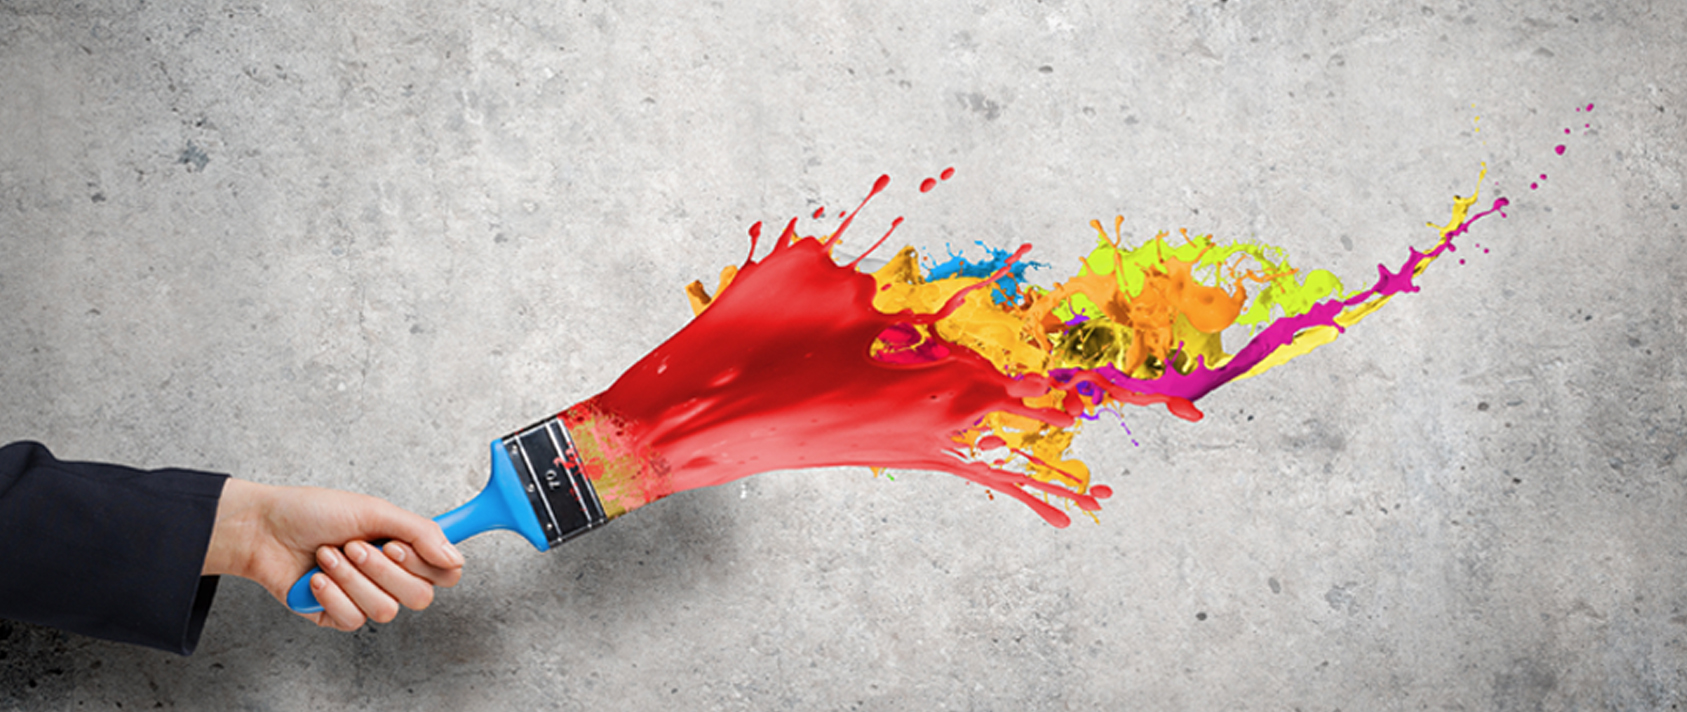 Why Graphic Design Is Important For a Business